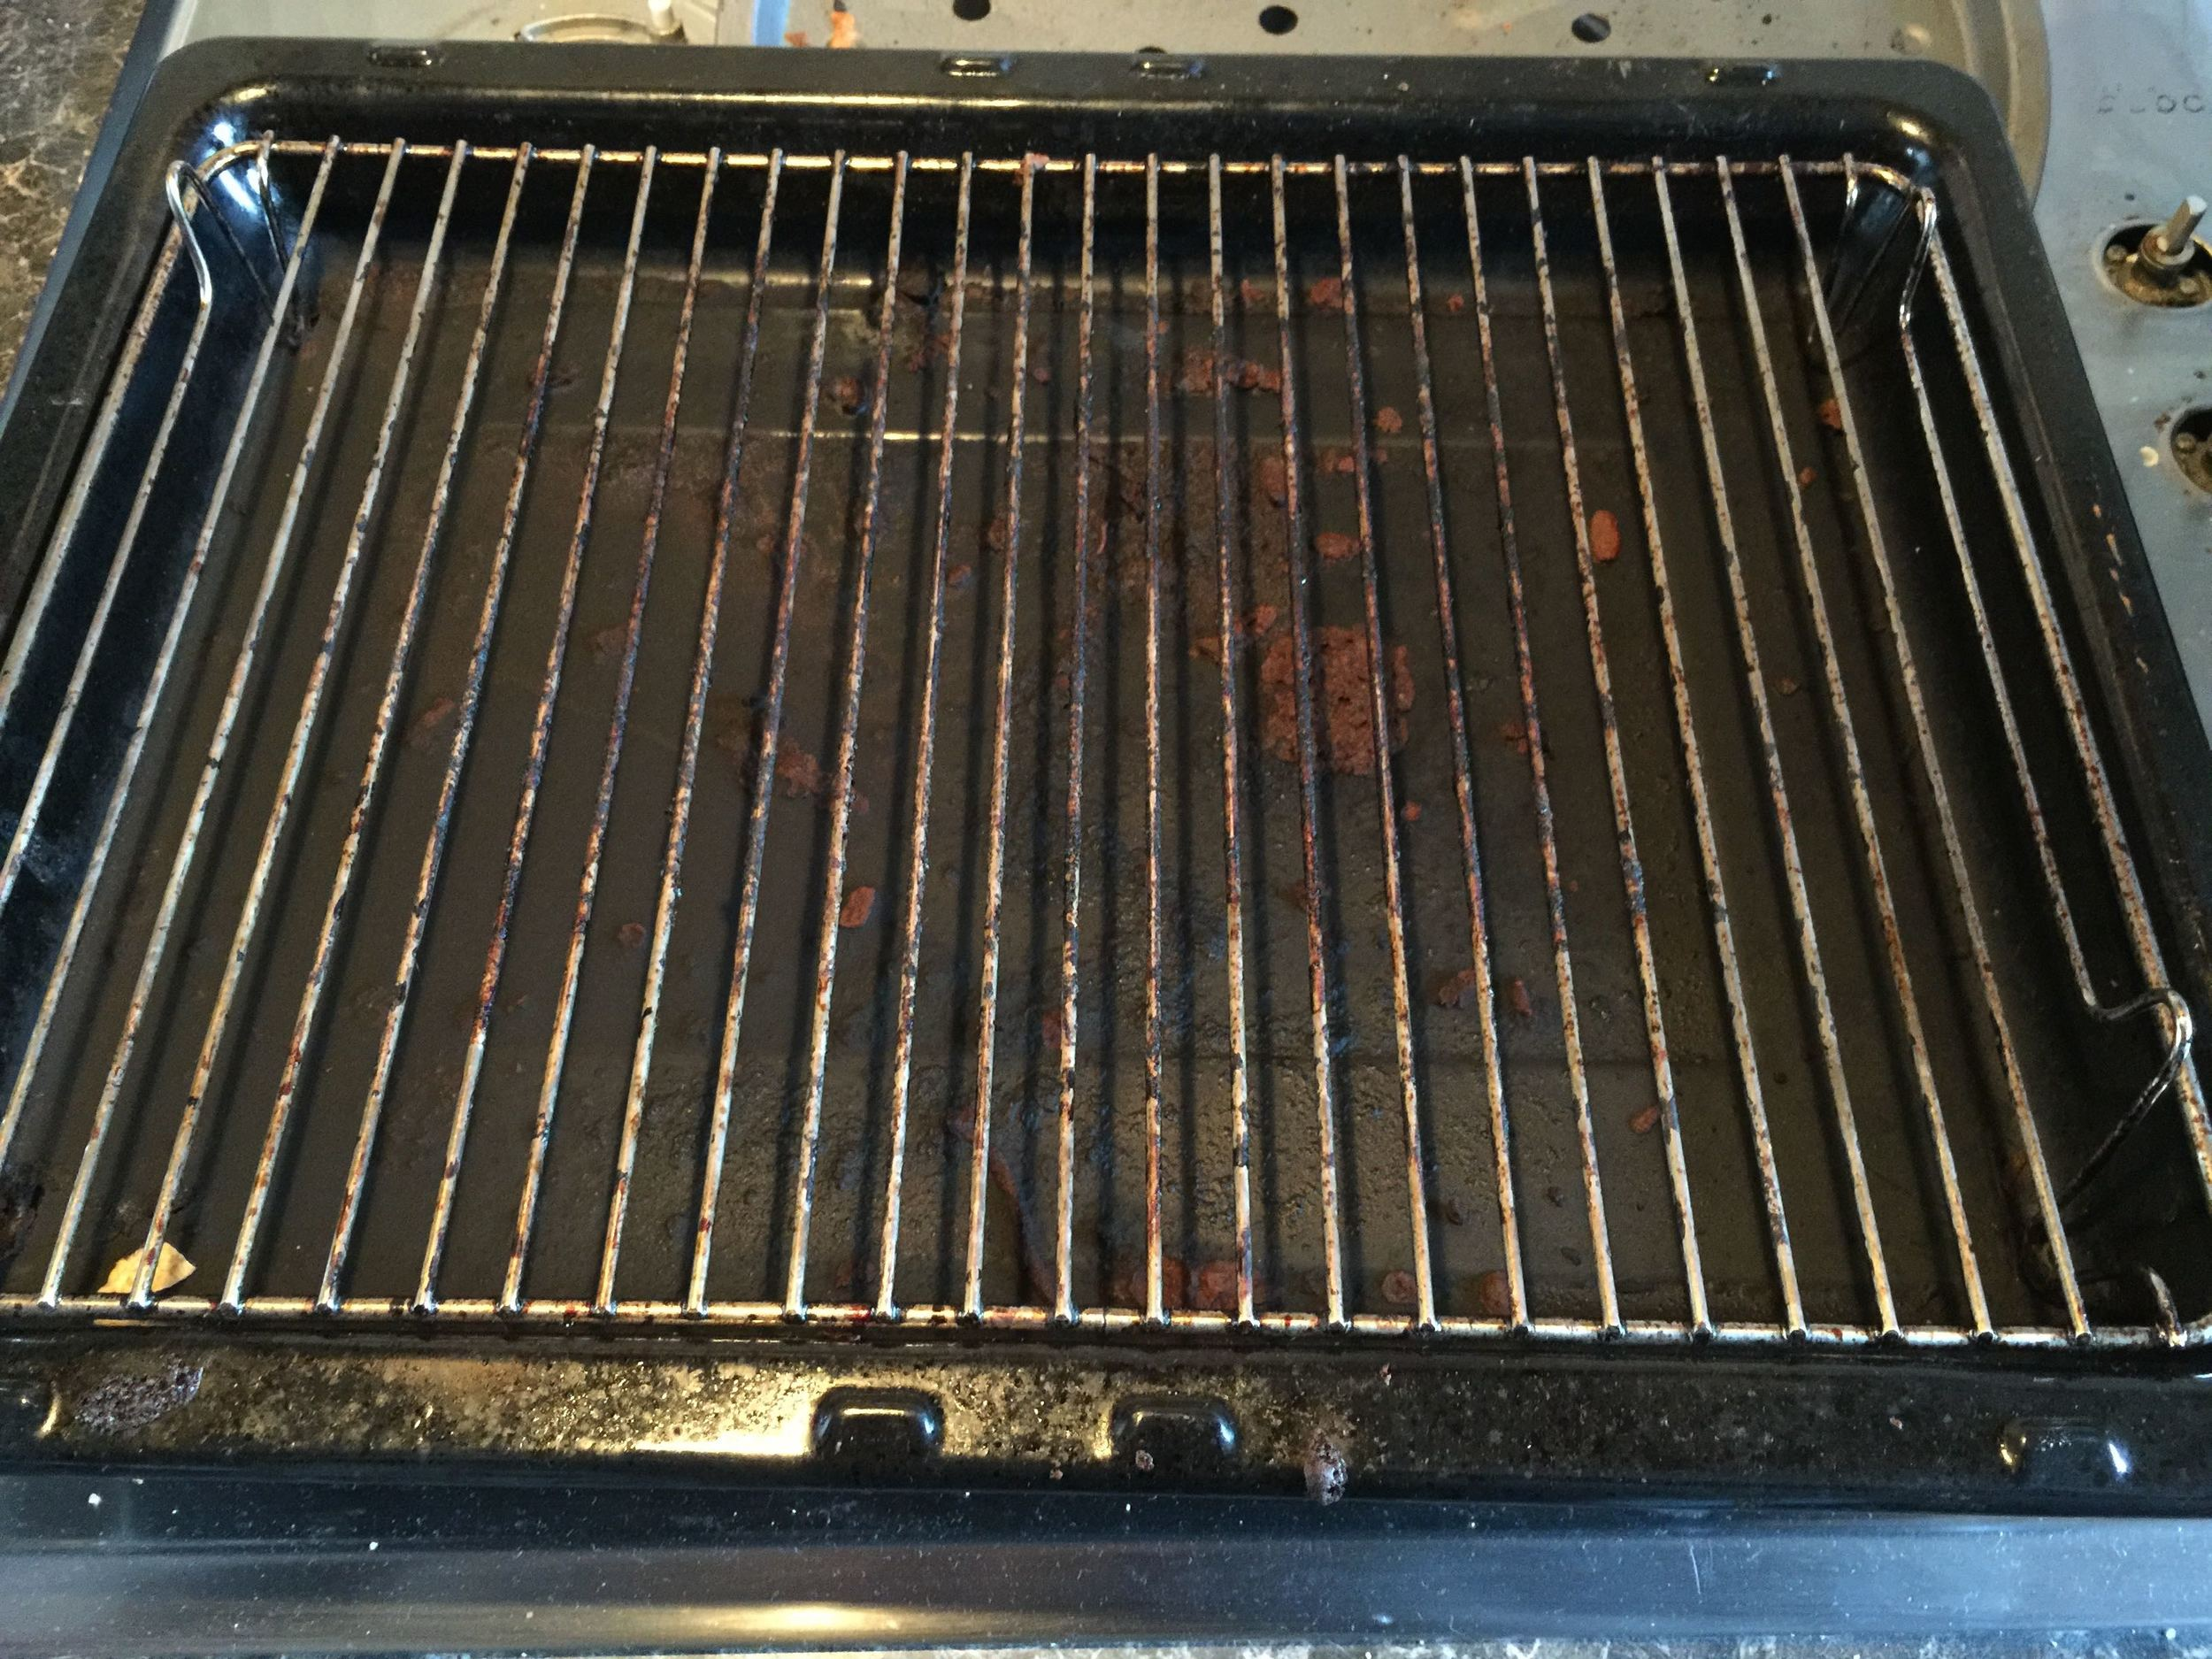 HotBox Oven Cleaning, Aberdare, South Wales. Professional Oven Cleaning Service